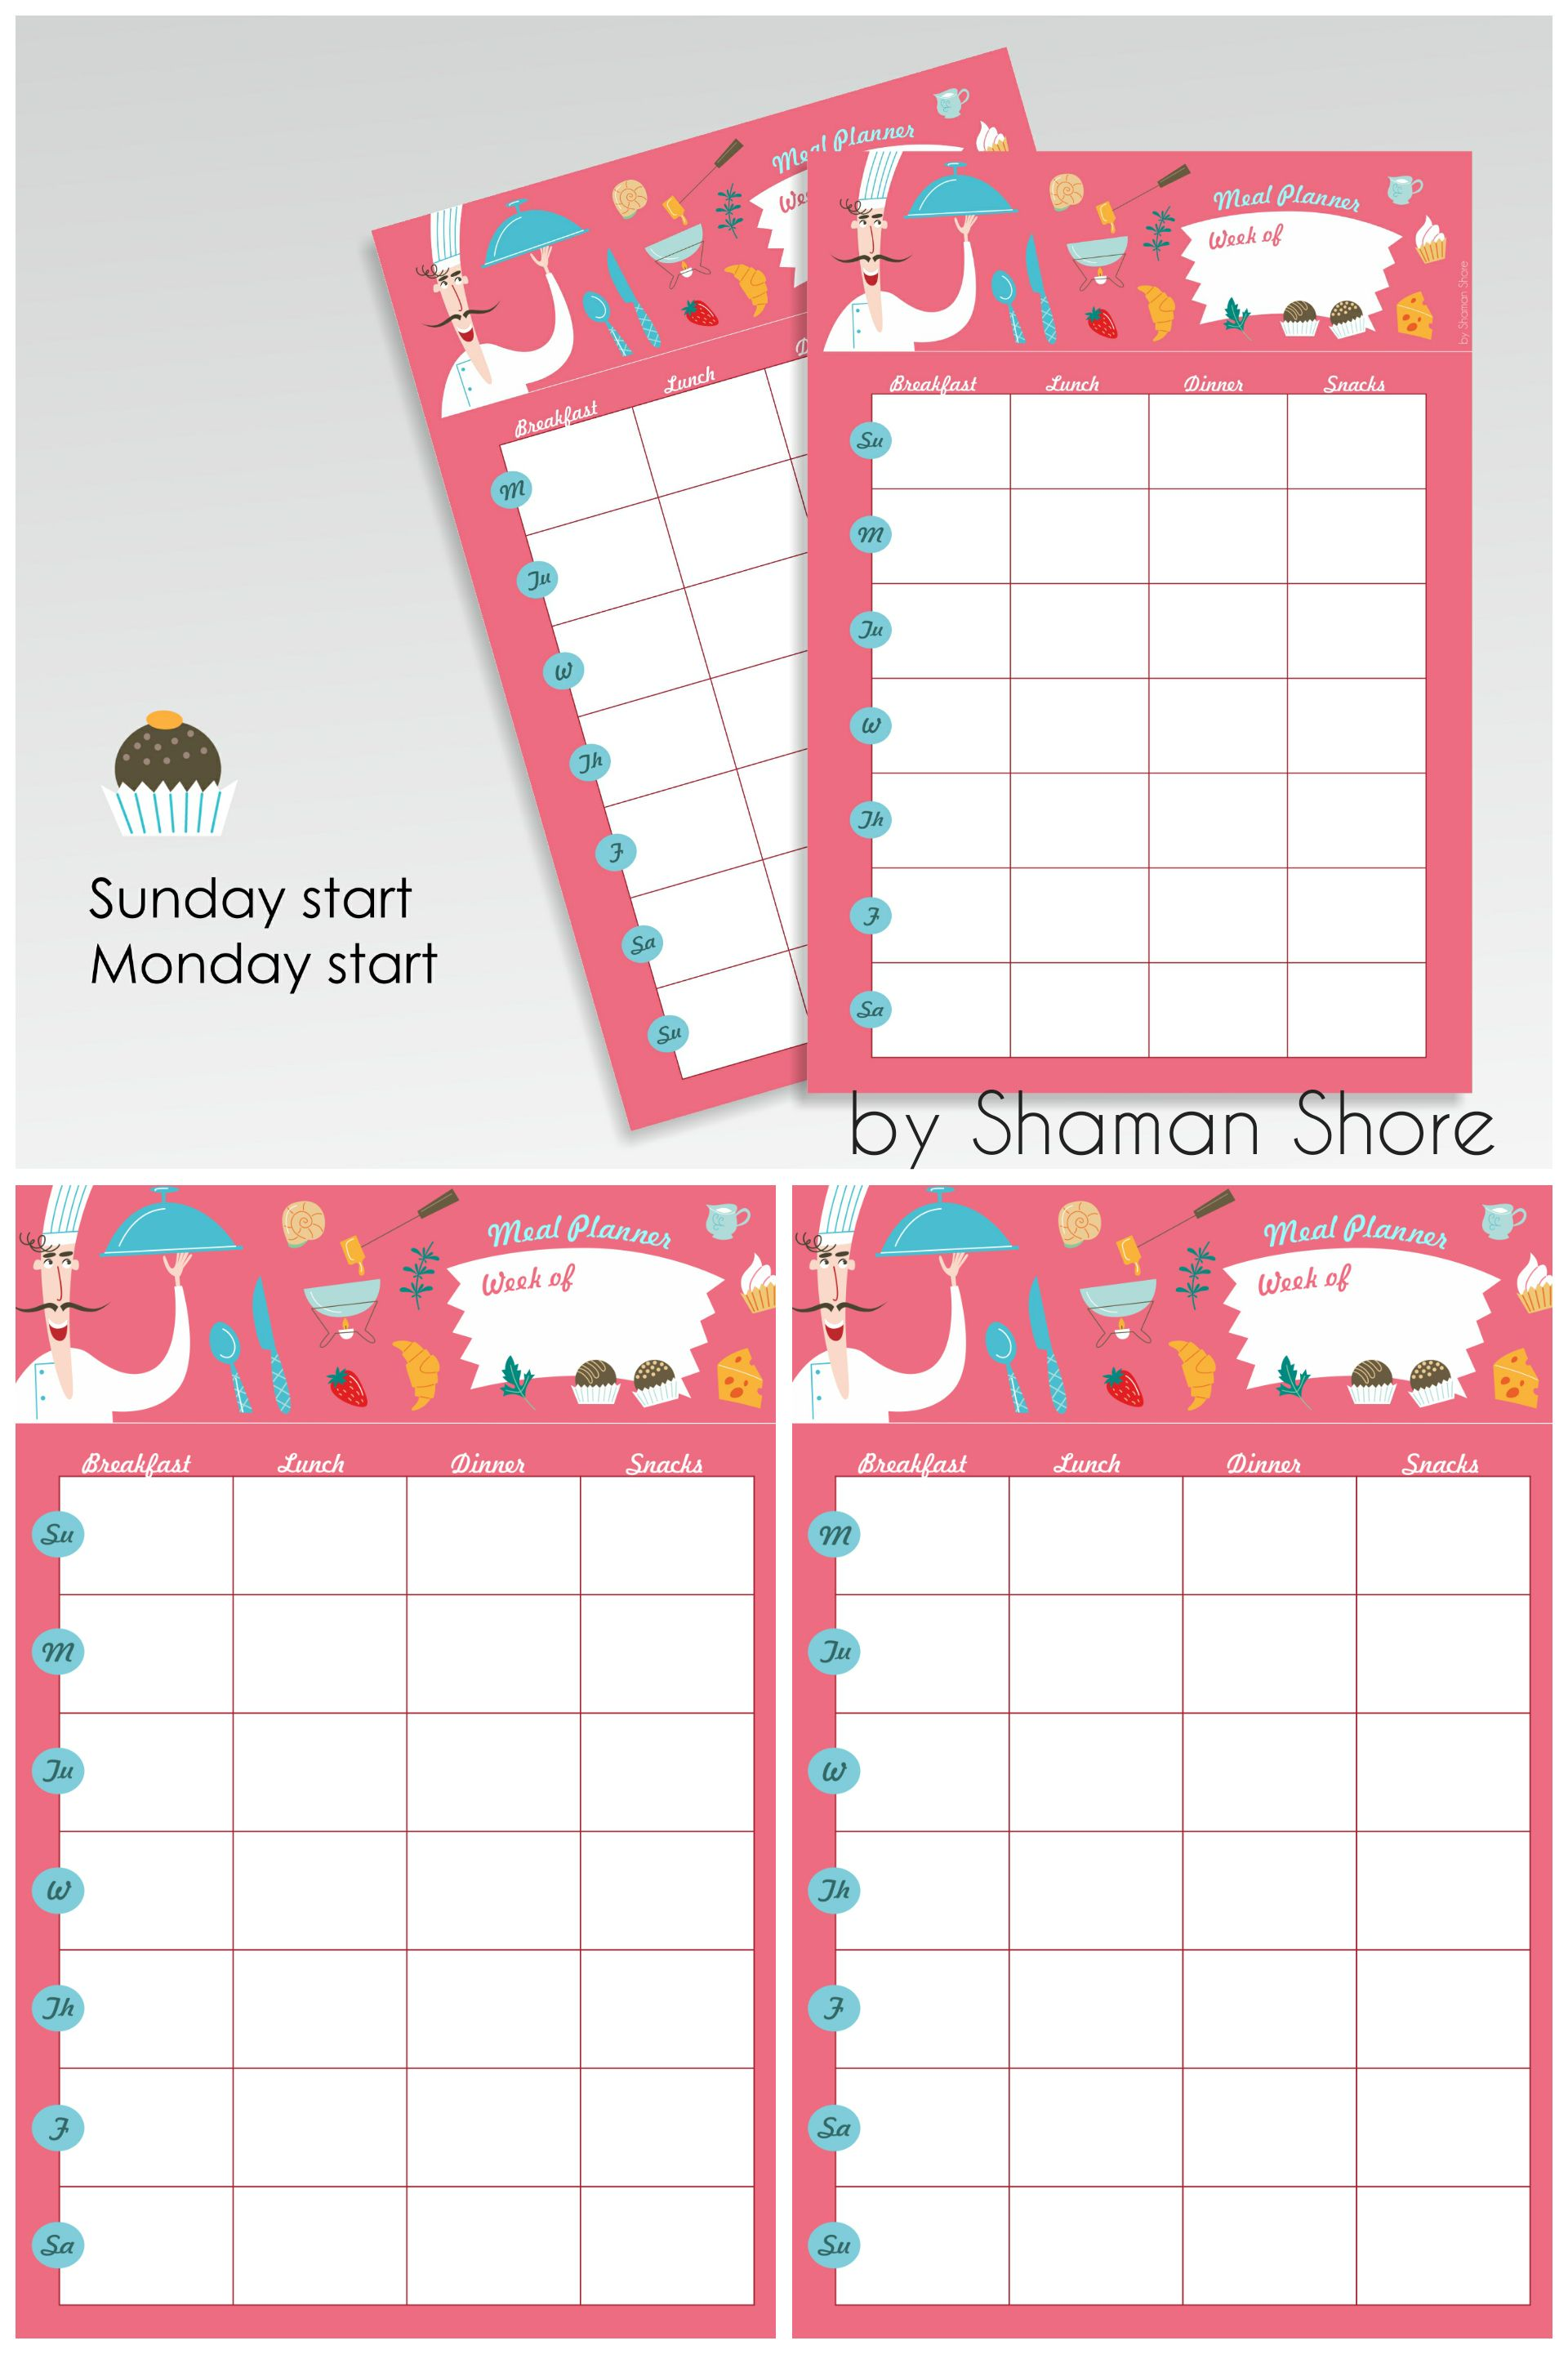 printable meal planner weekly, printable meal plan calendar, menu